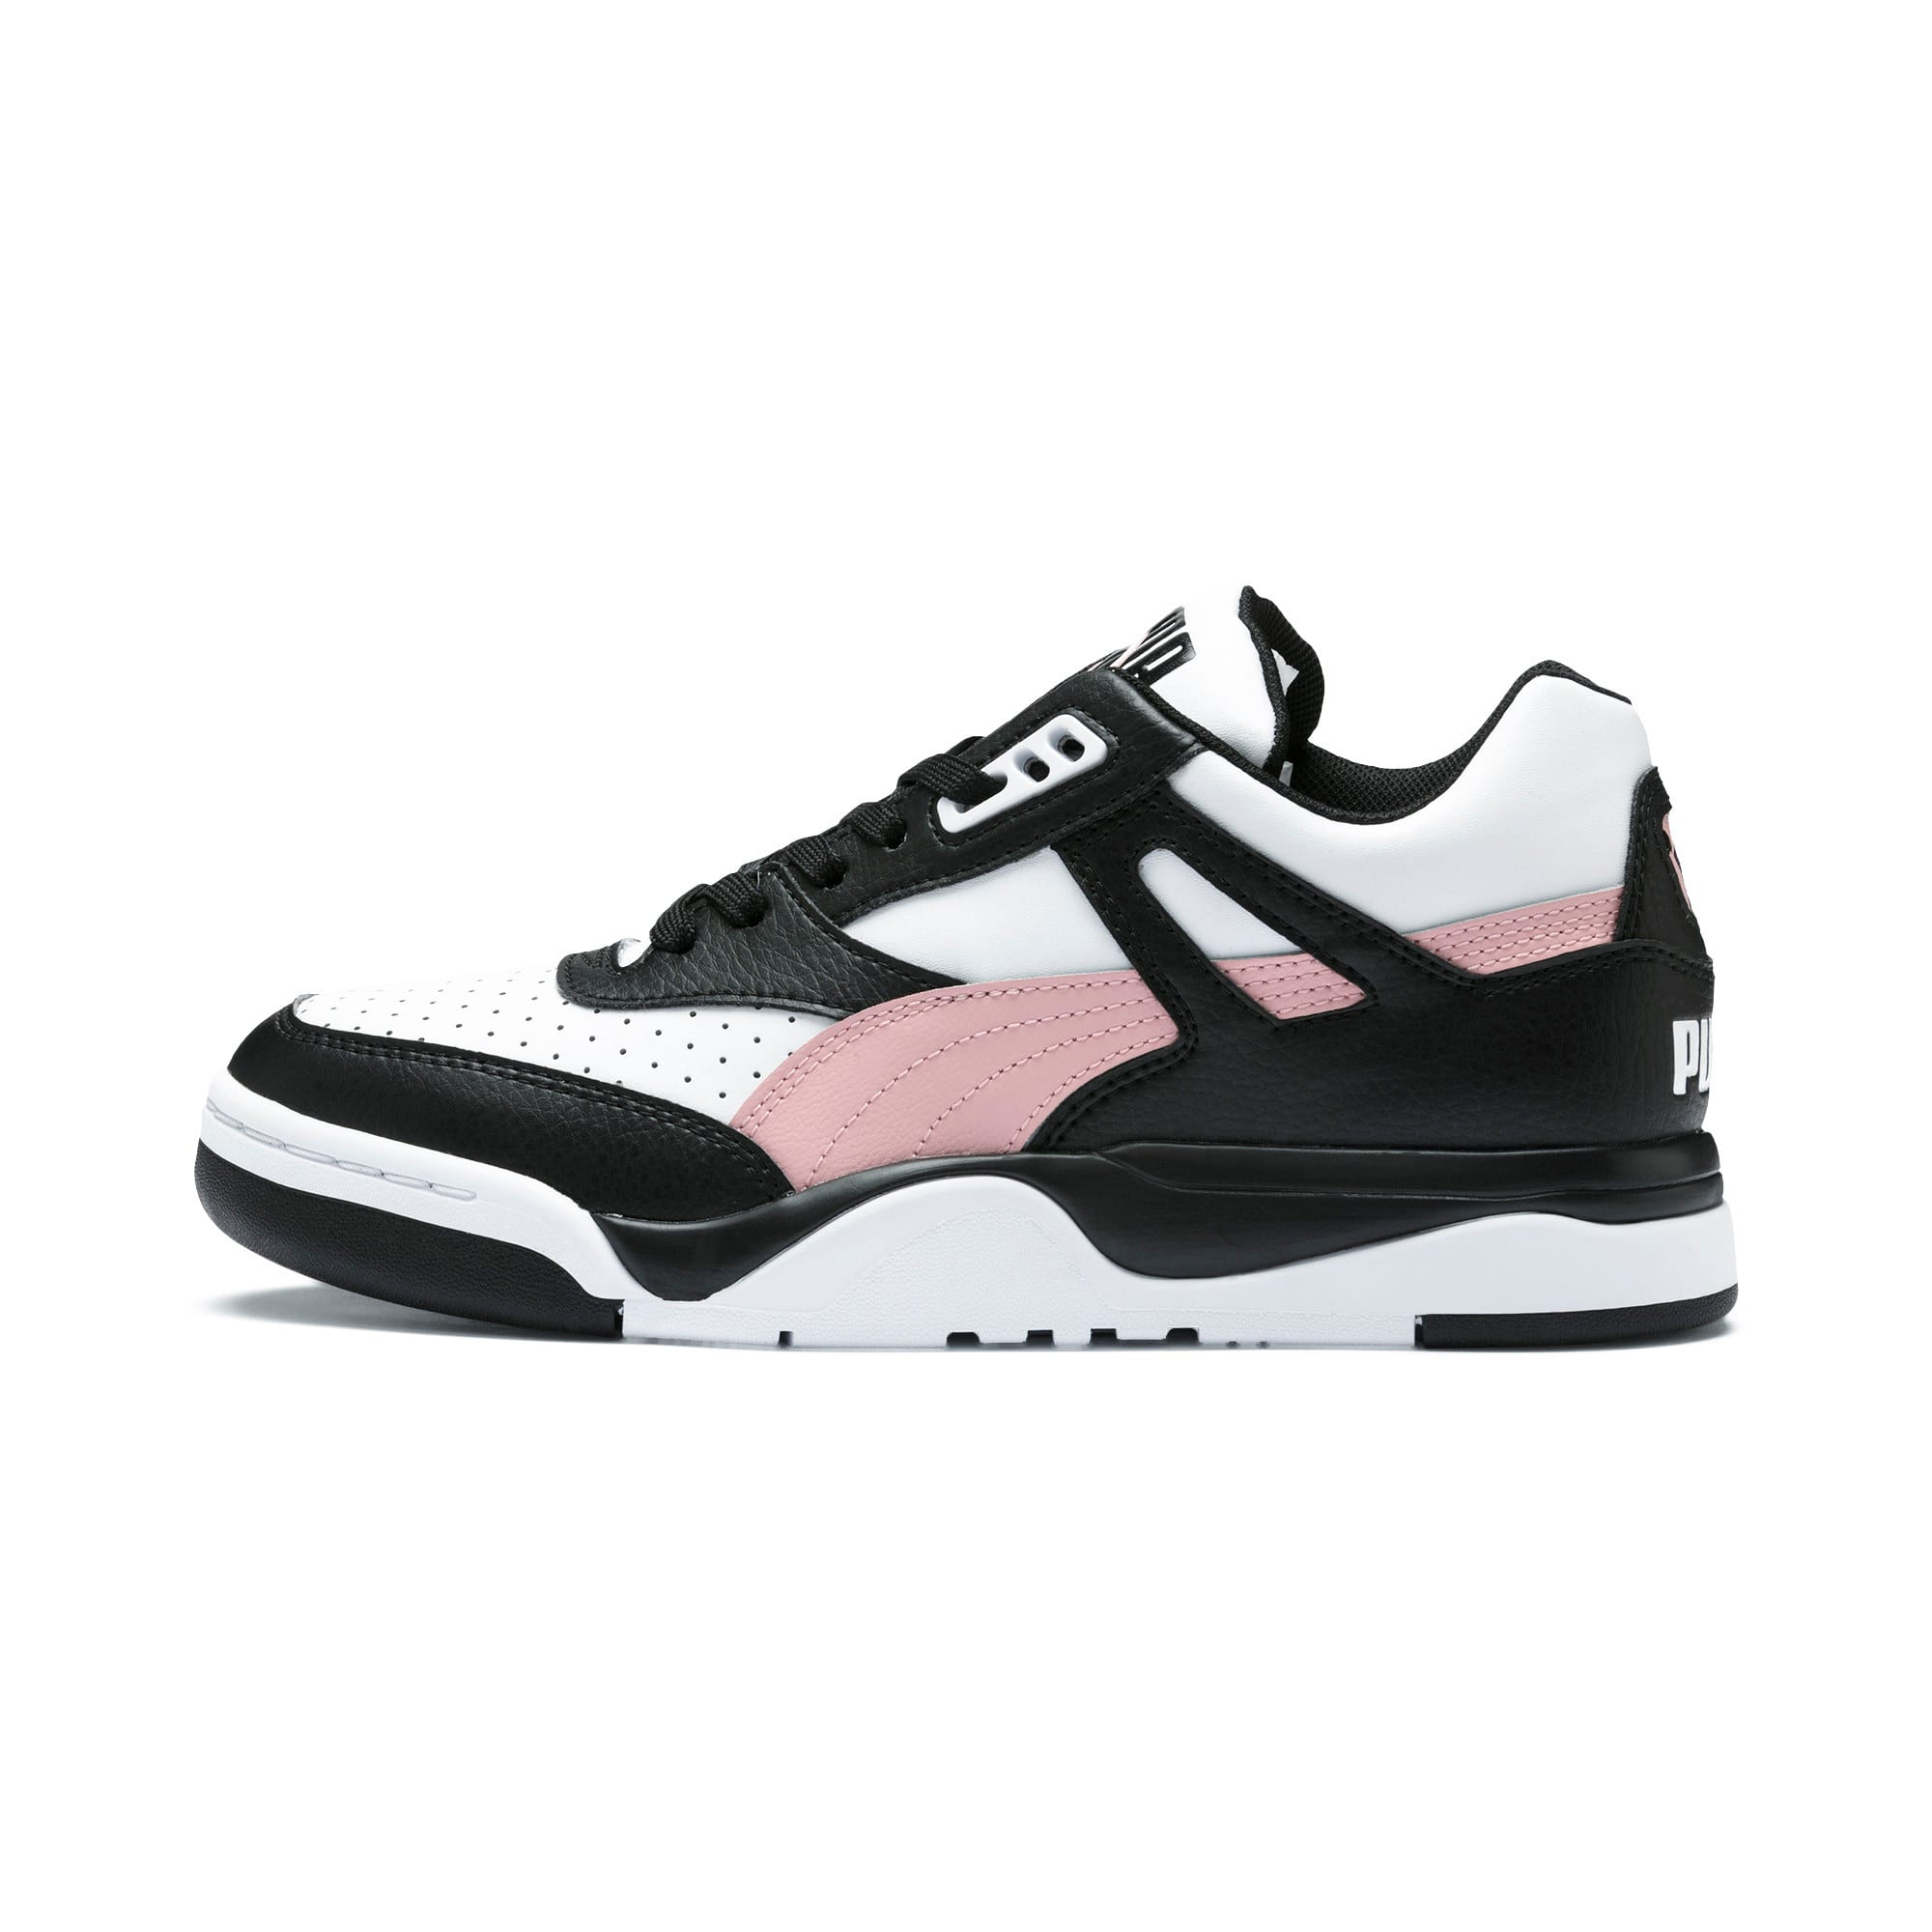 Thumbnail 1 of Basket Palace Guard Colour Block pour femme, Puma Black-Puma White, medium